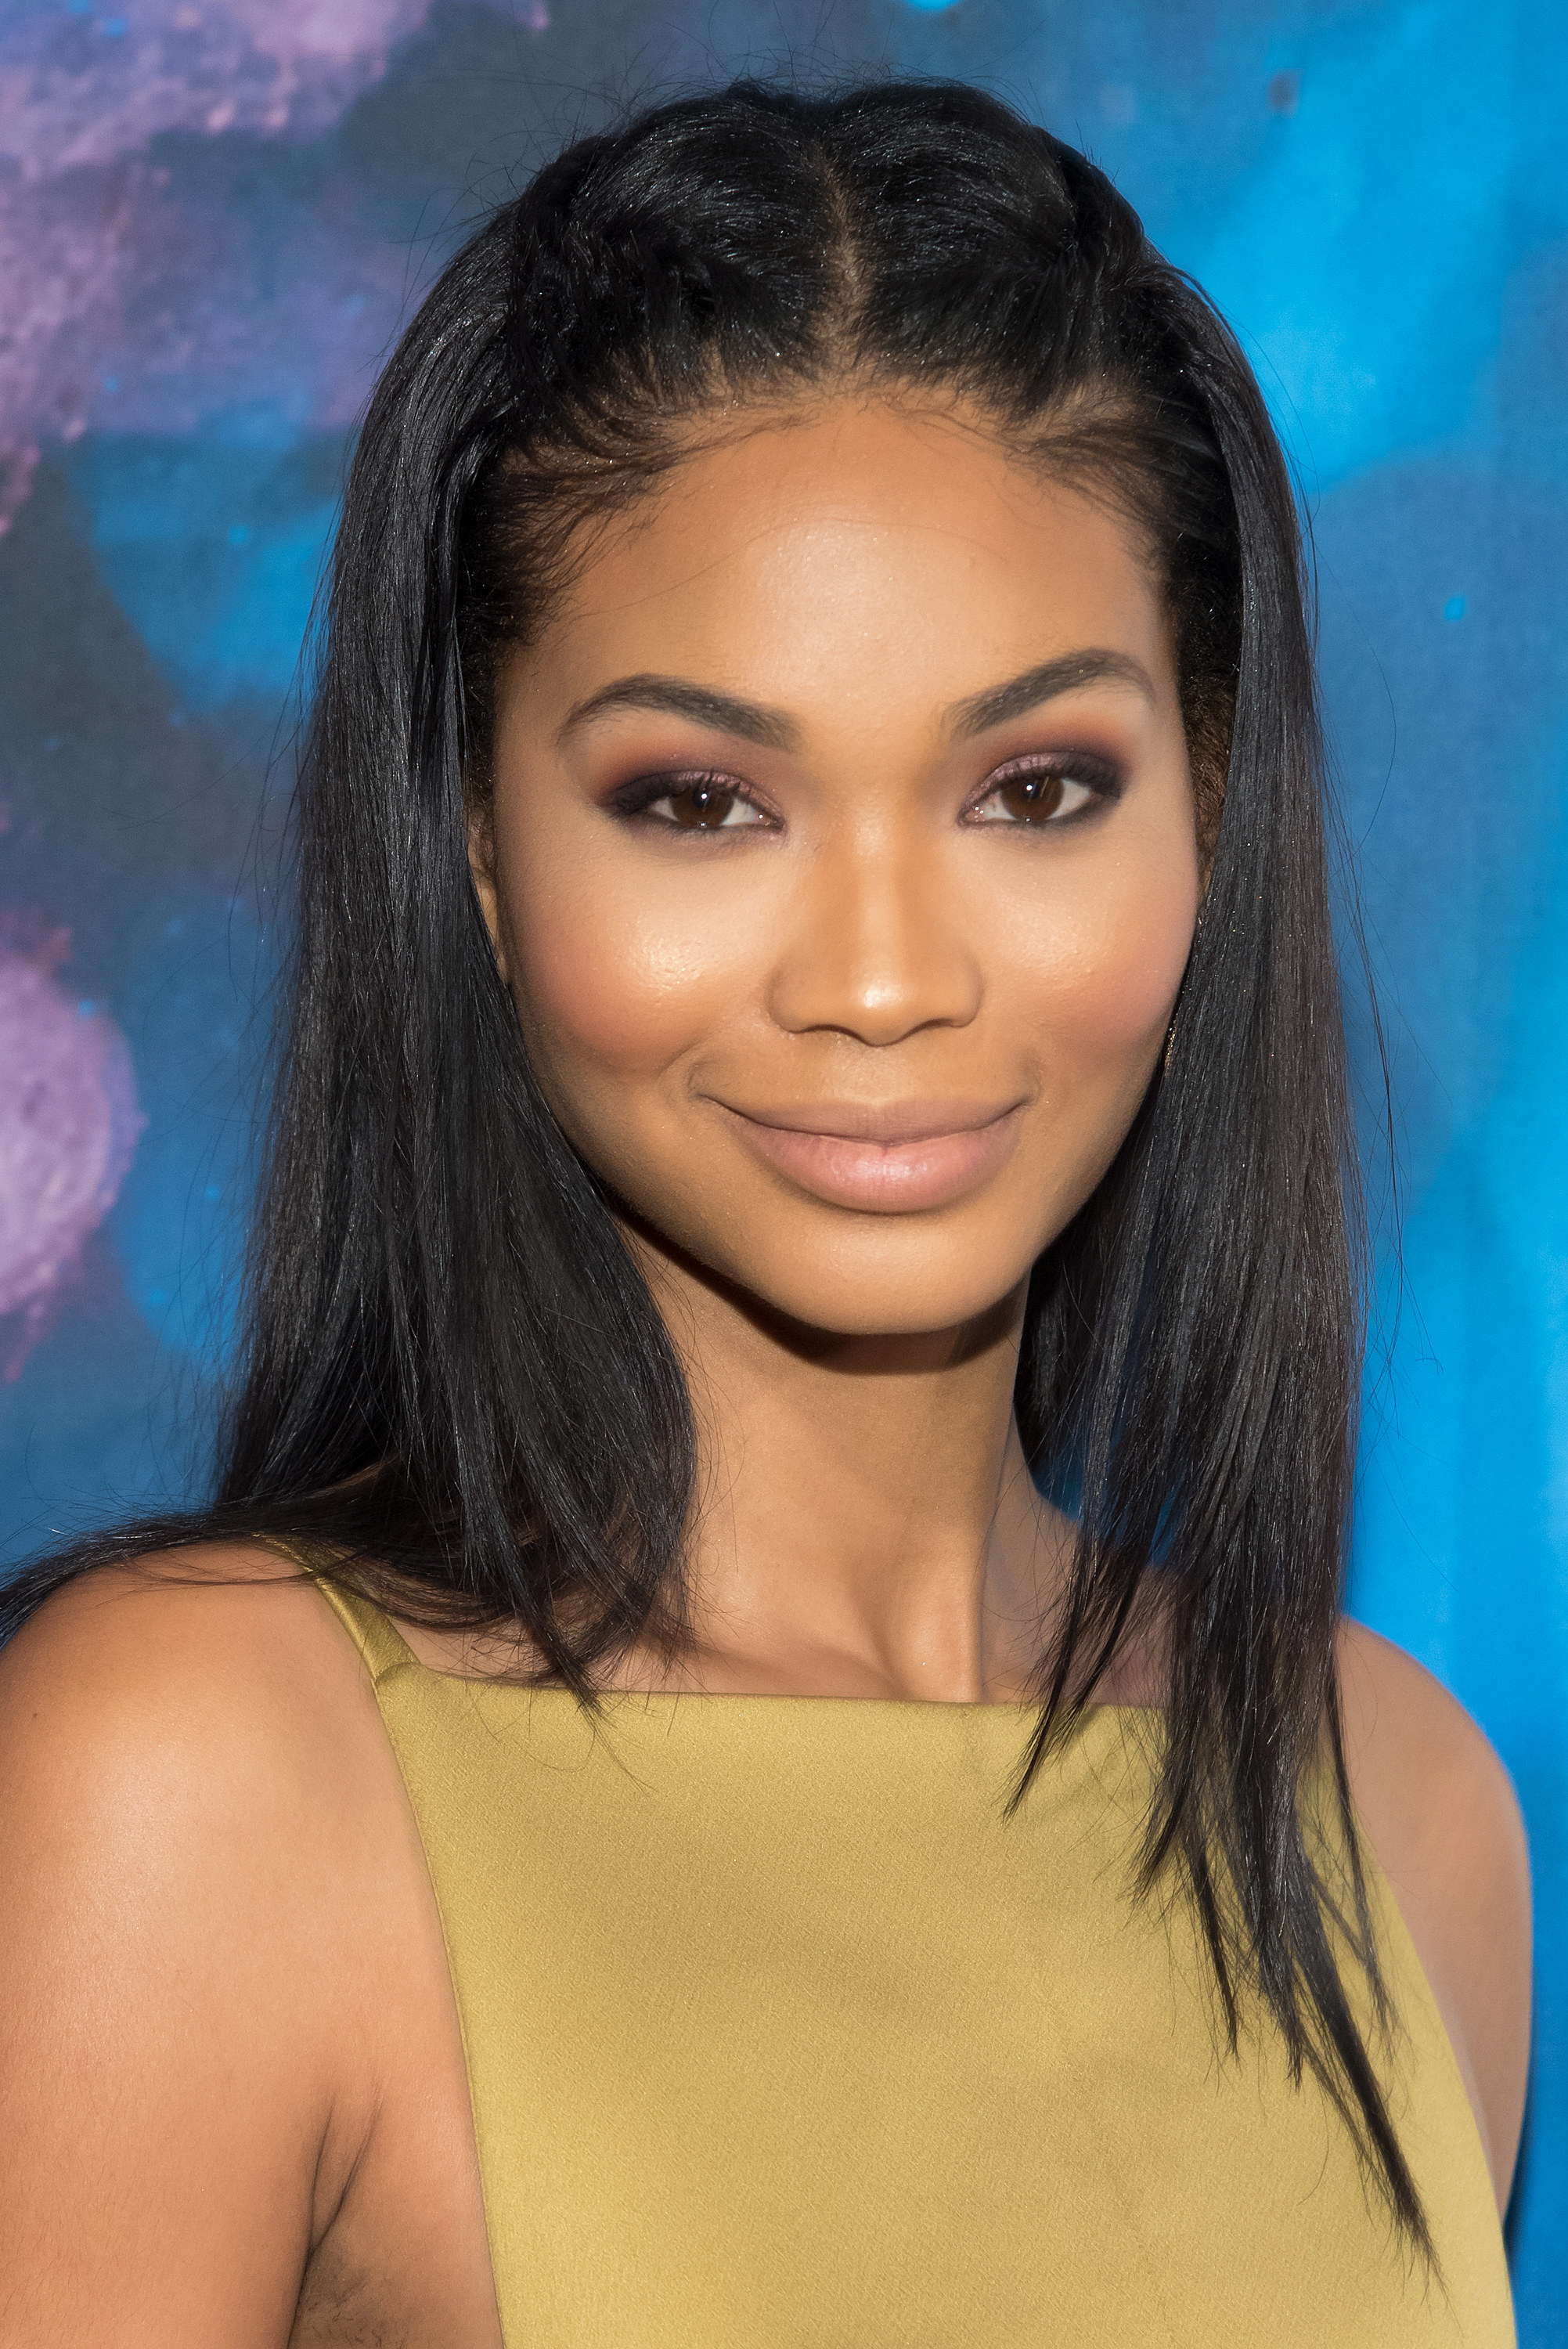 Chanel Iman smiles with her hair straightened and pinned back, in a muted, olive-yellow dress